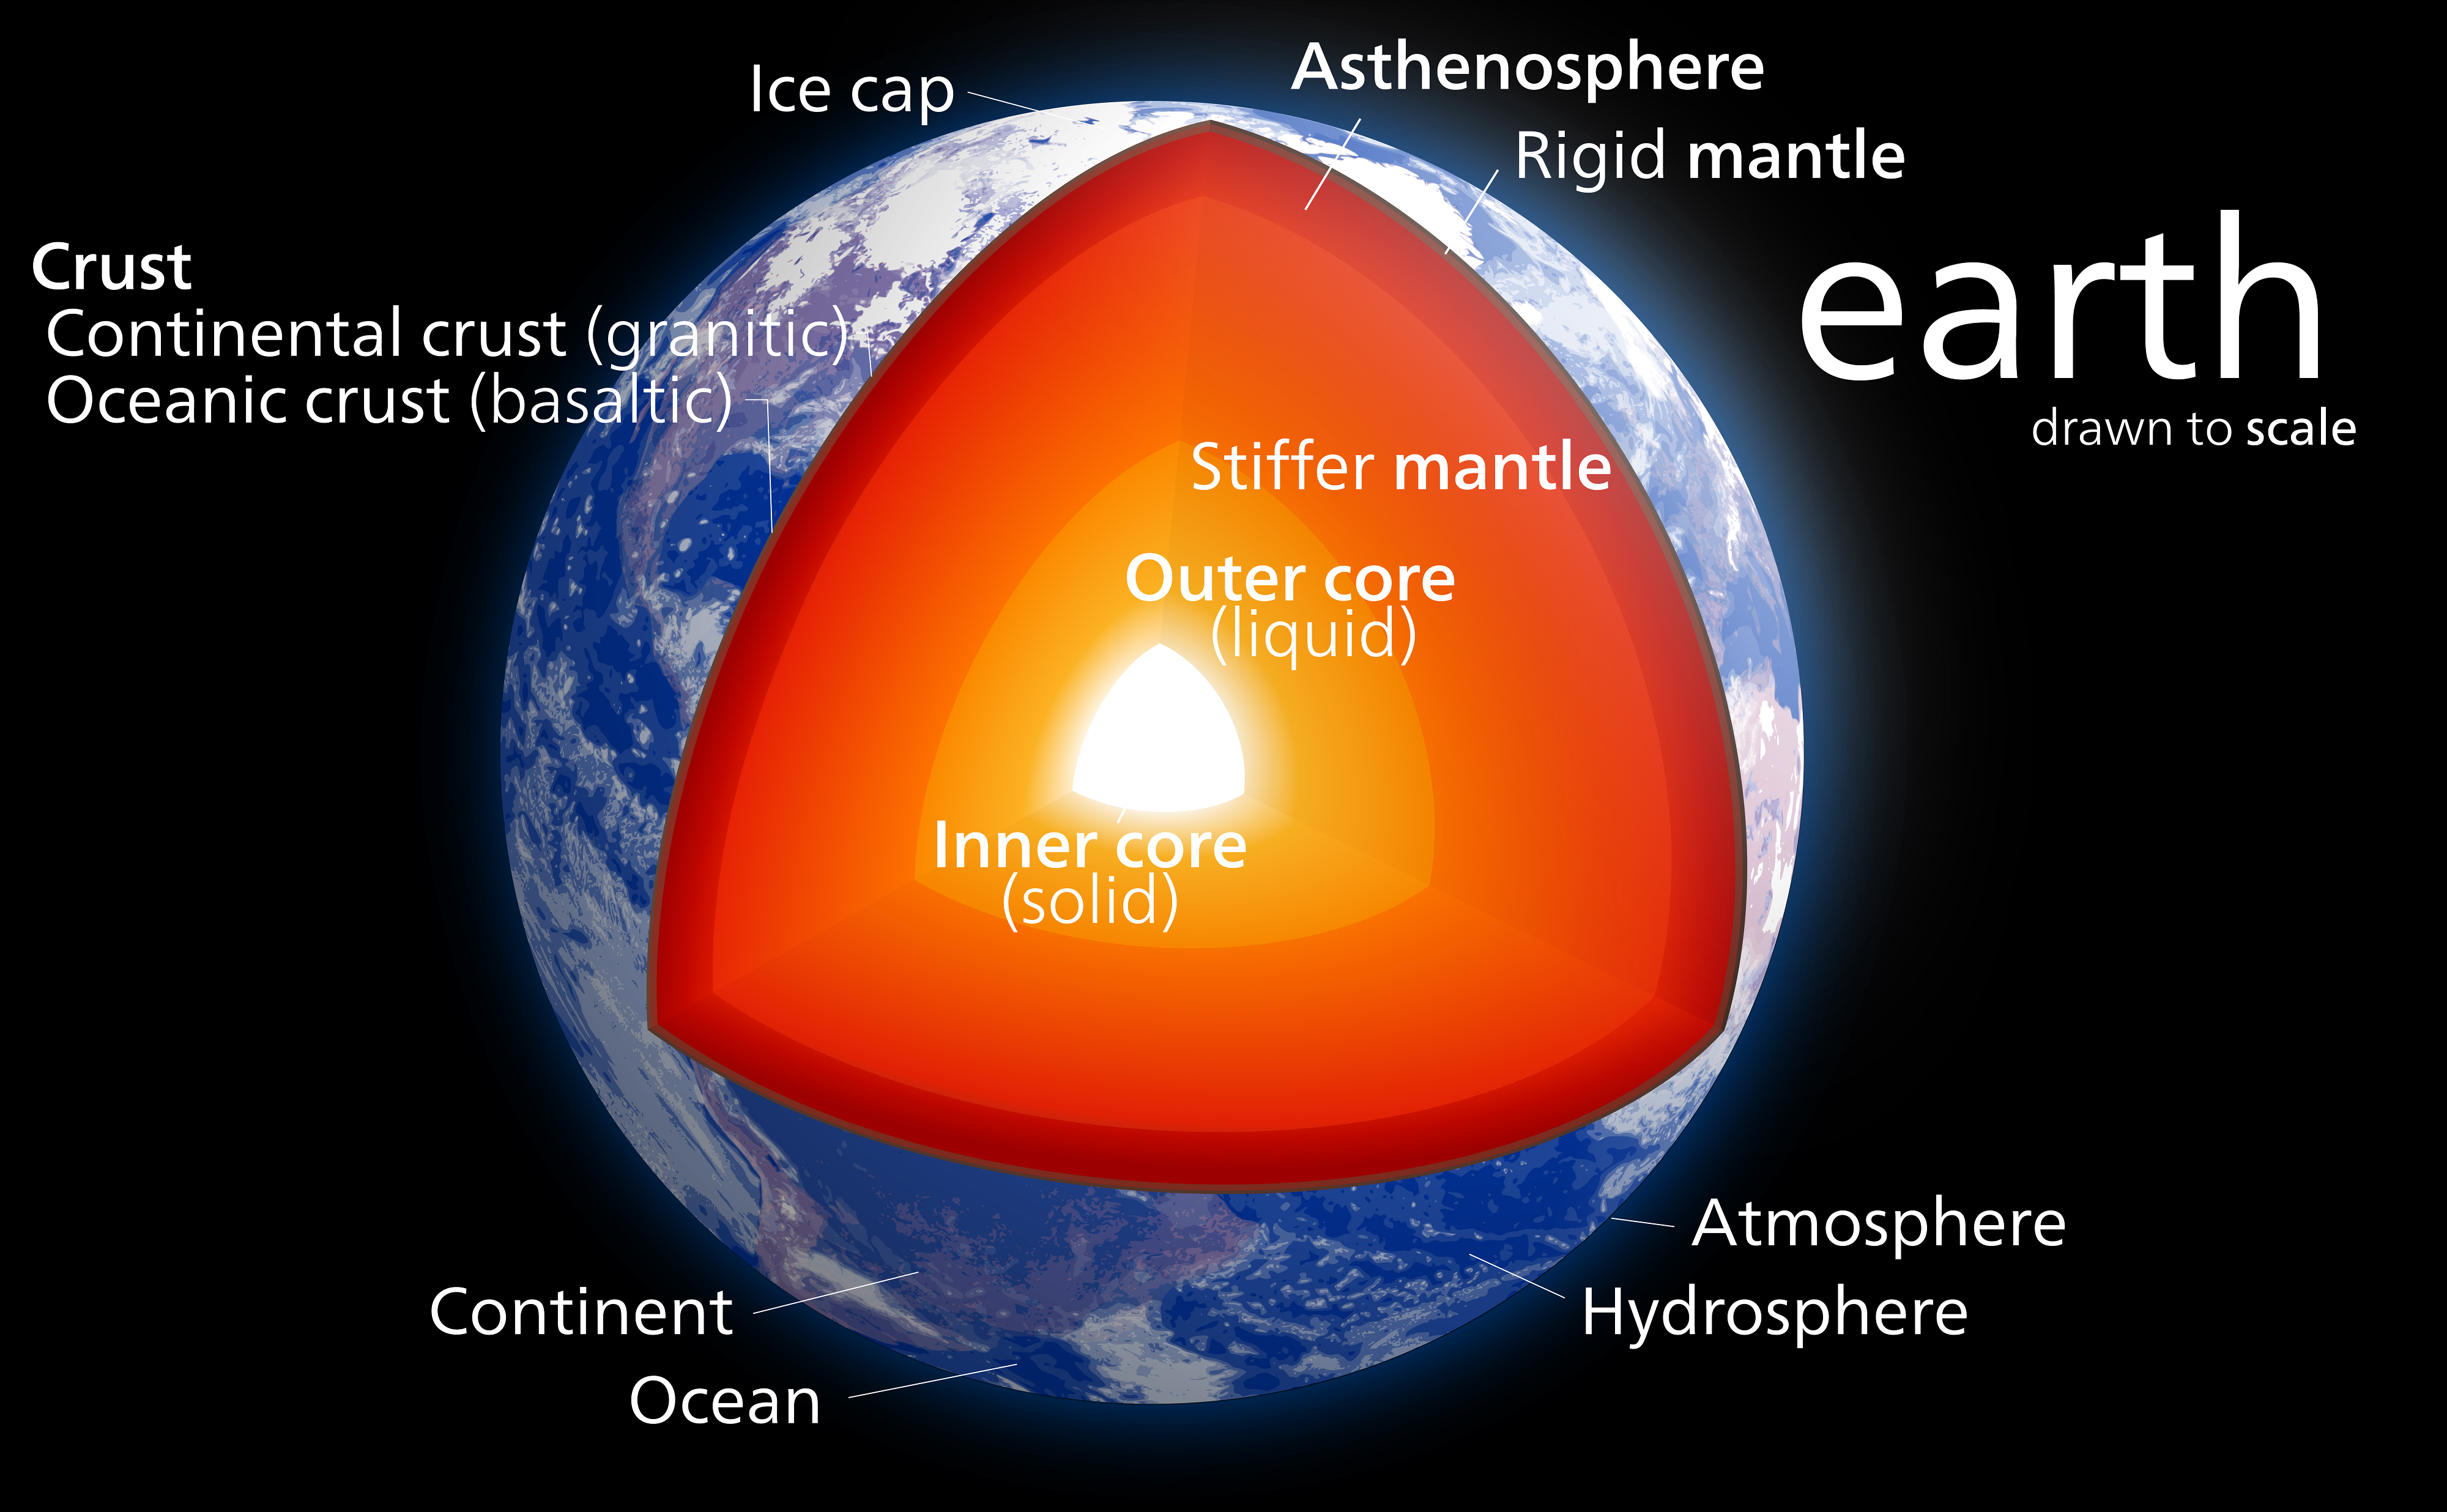 A cutaway diagram of the earth